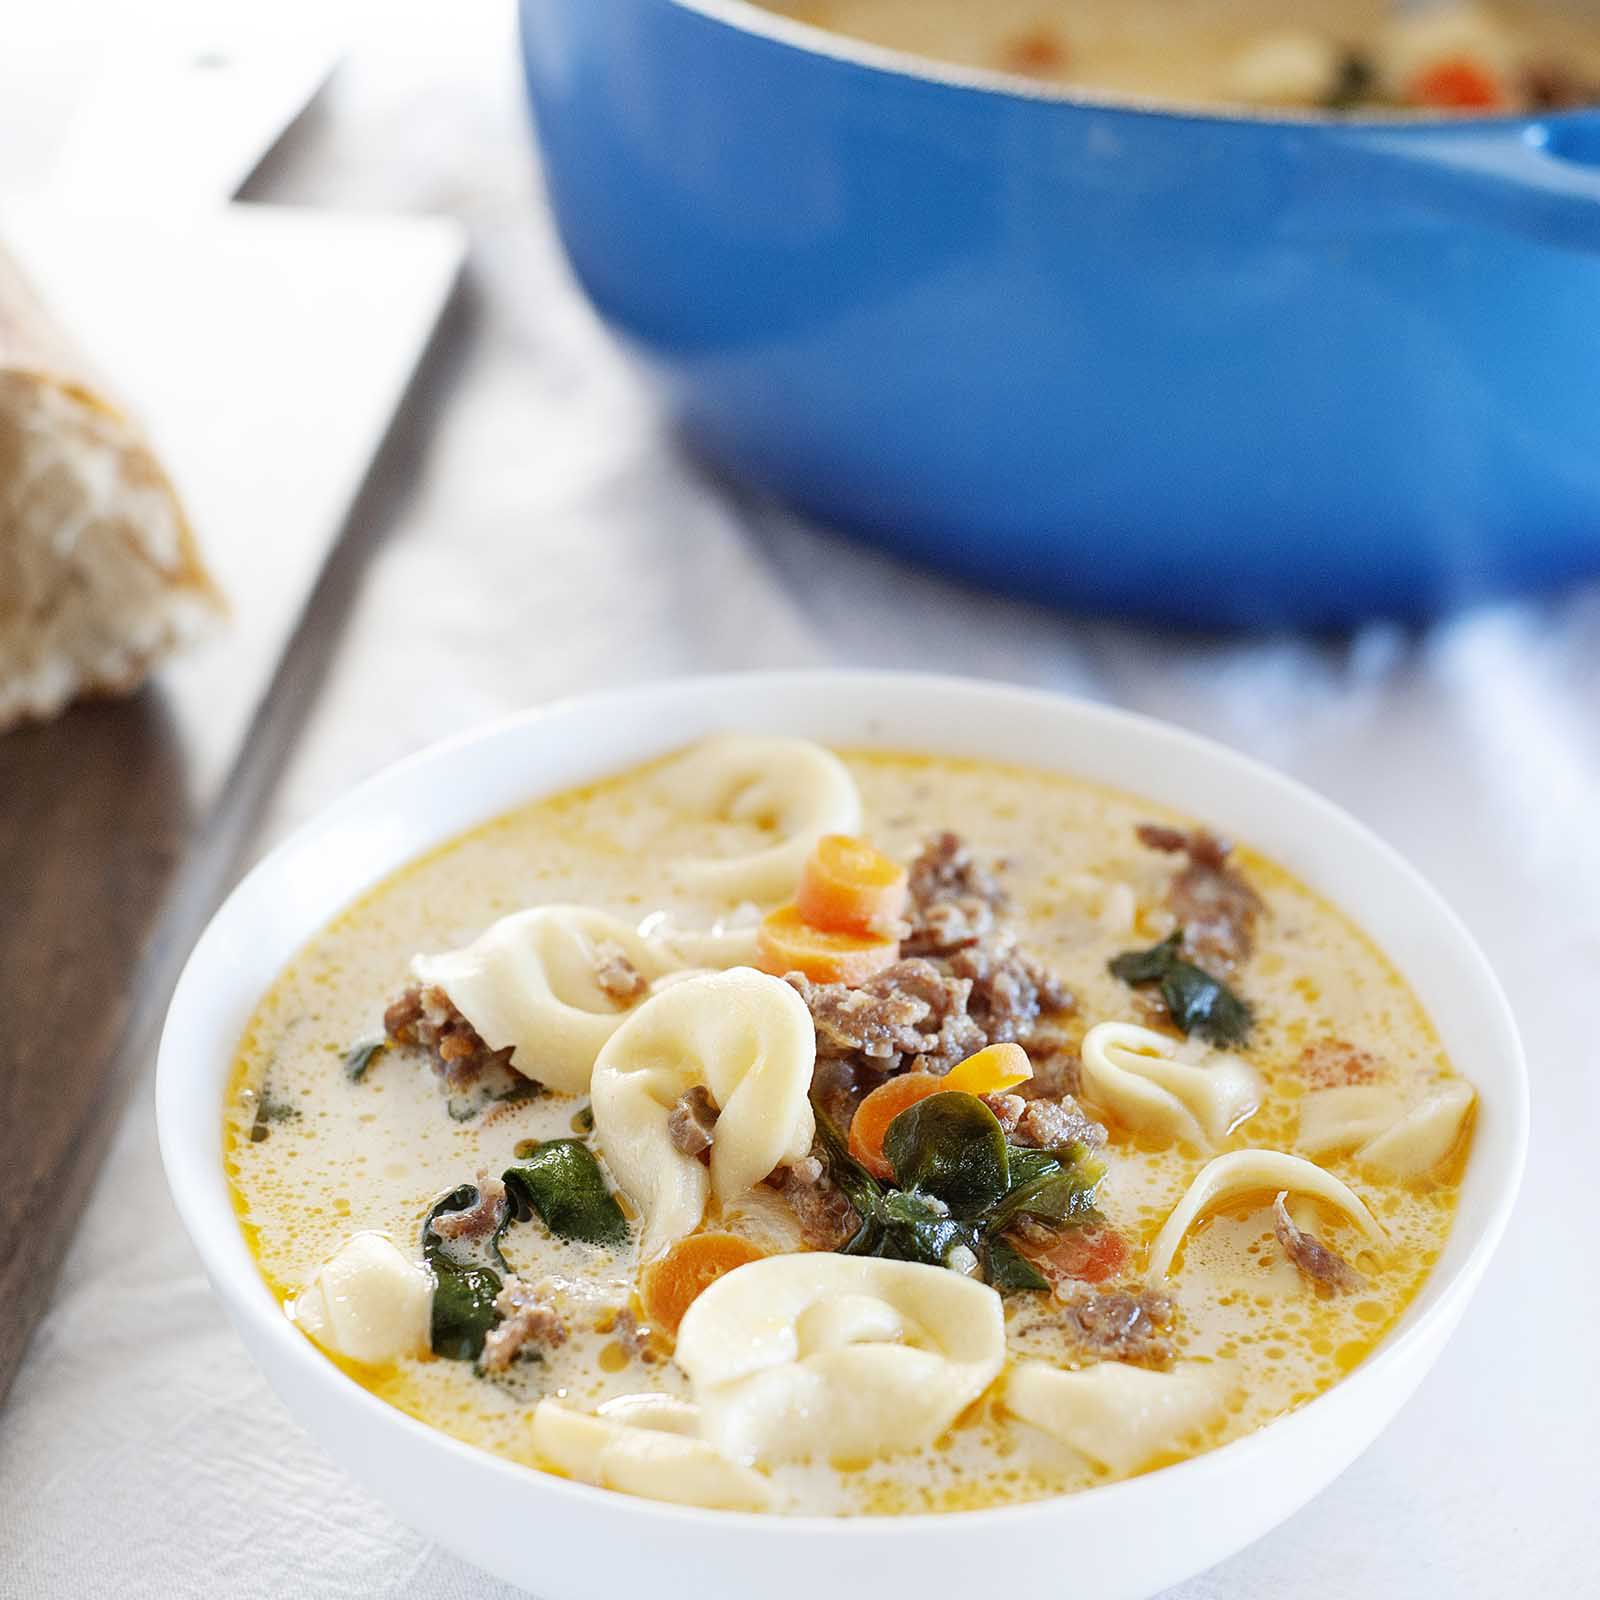 Best homemade creamy tortellini soup in a white bowl on a table with a white tablecloth. A blue dutch oven with soup and spoon inside is behind the bowl.